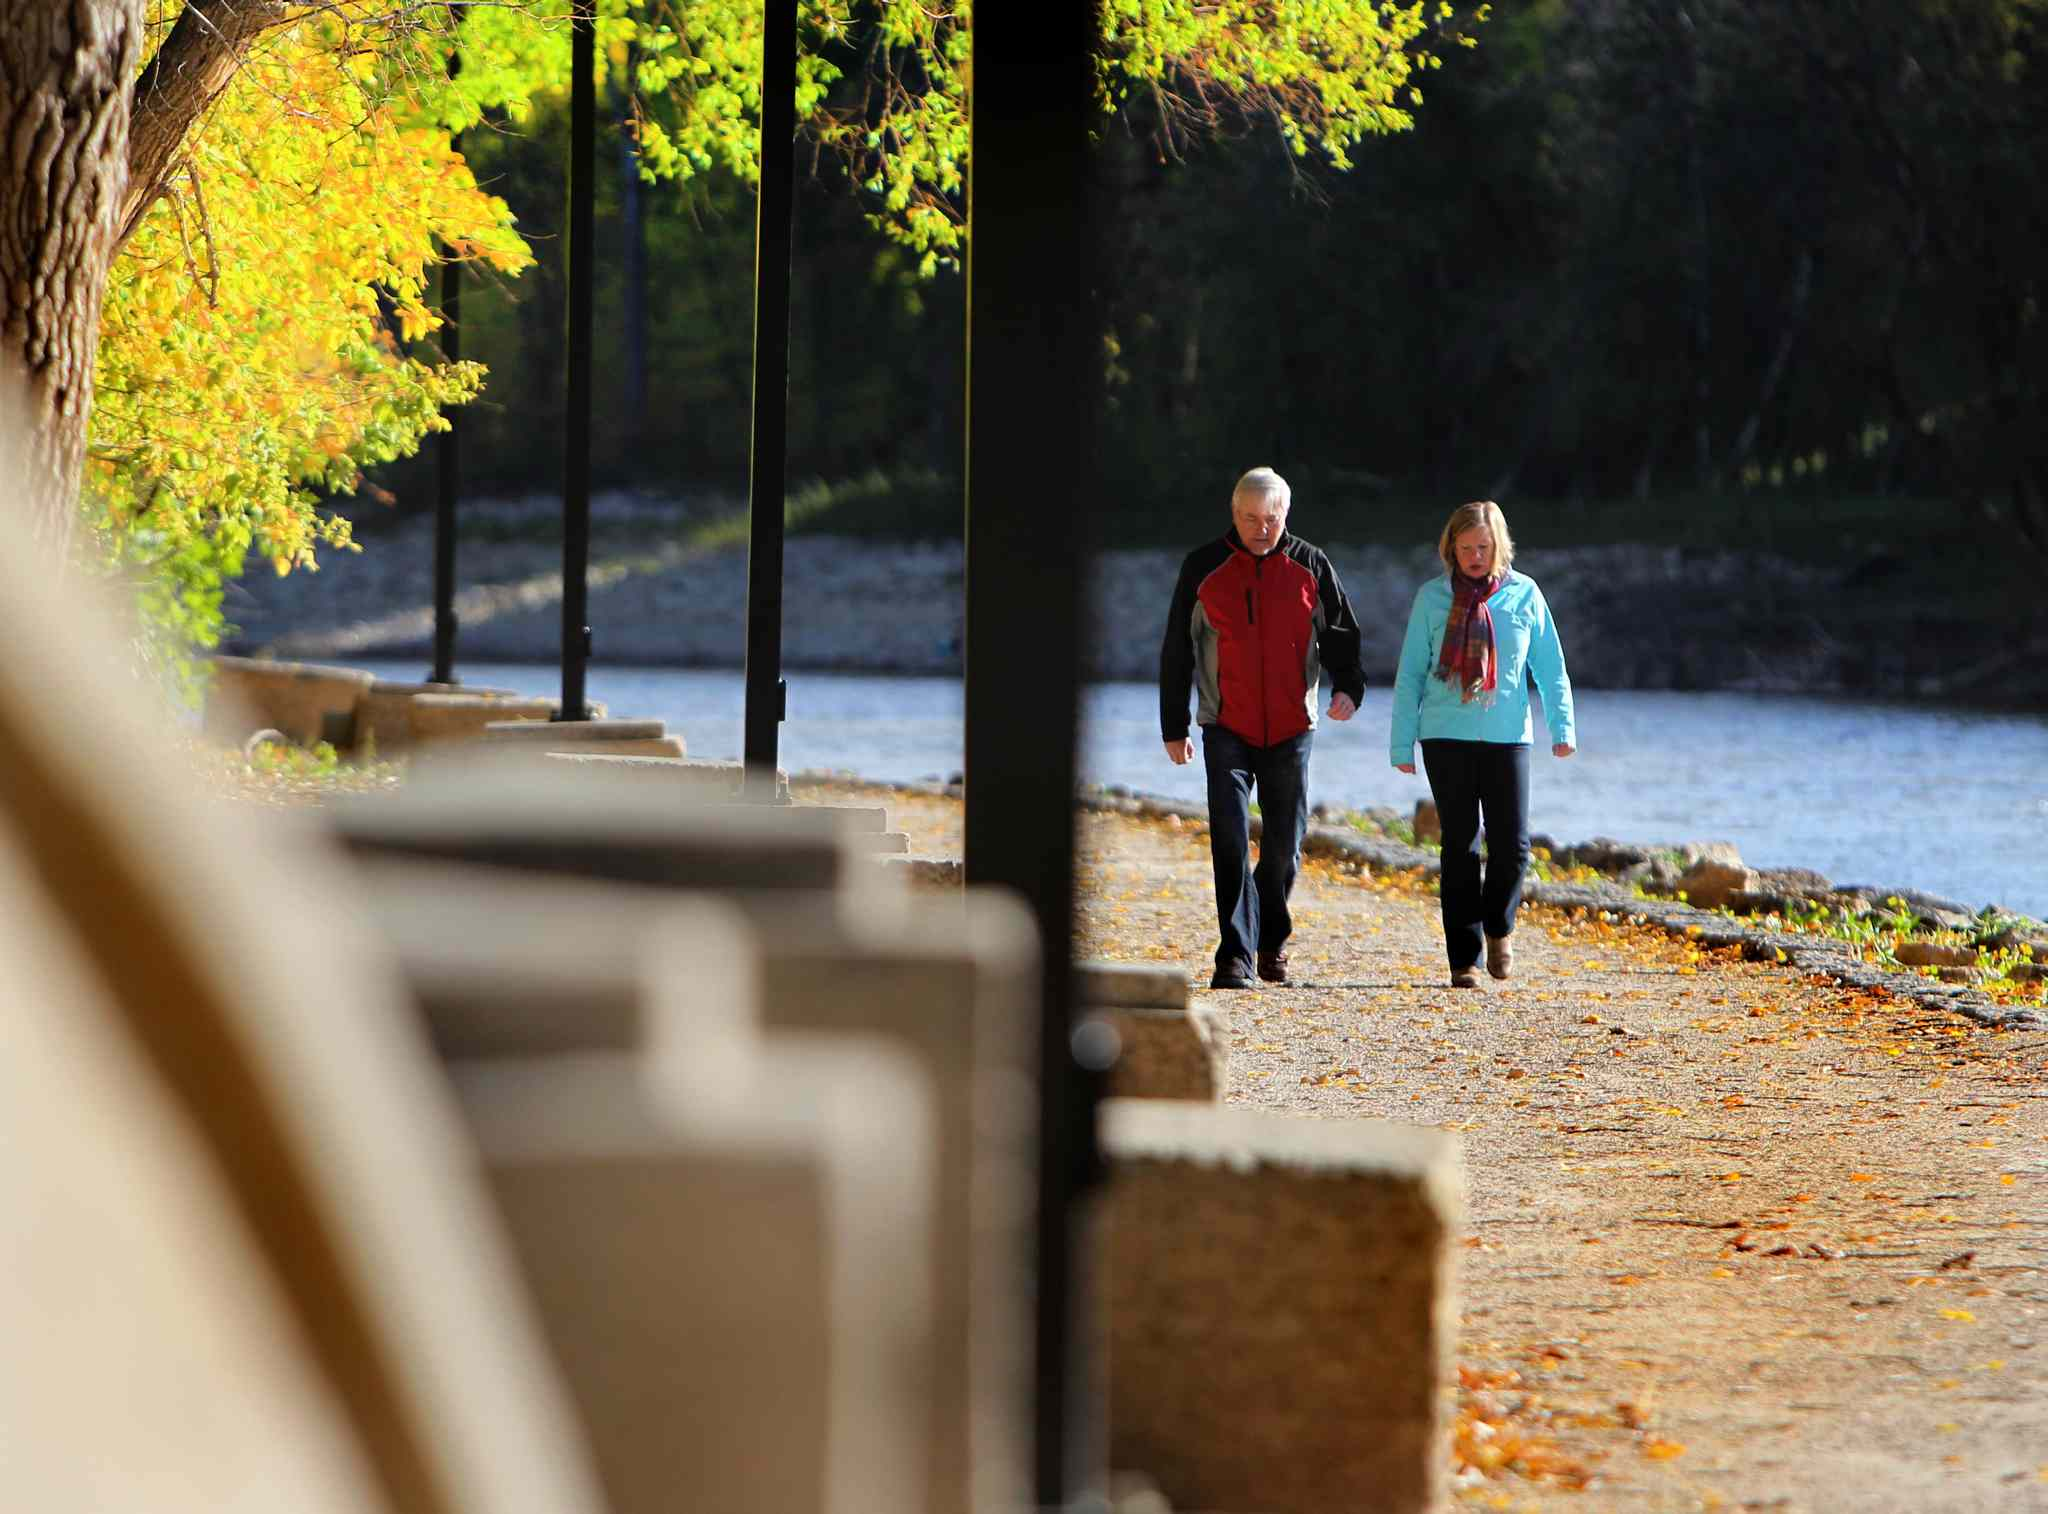 A couple enjoys a brisk walk along the Assiniboine River Saturday morning under sunny skies.